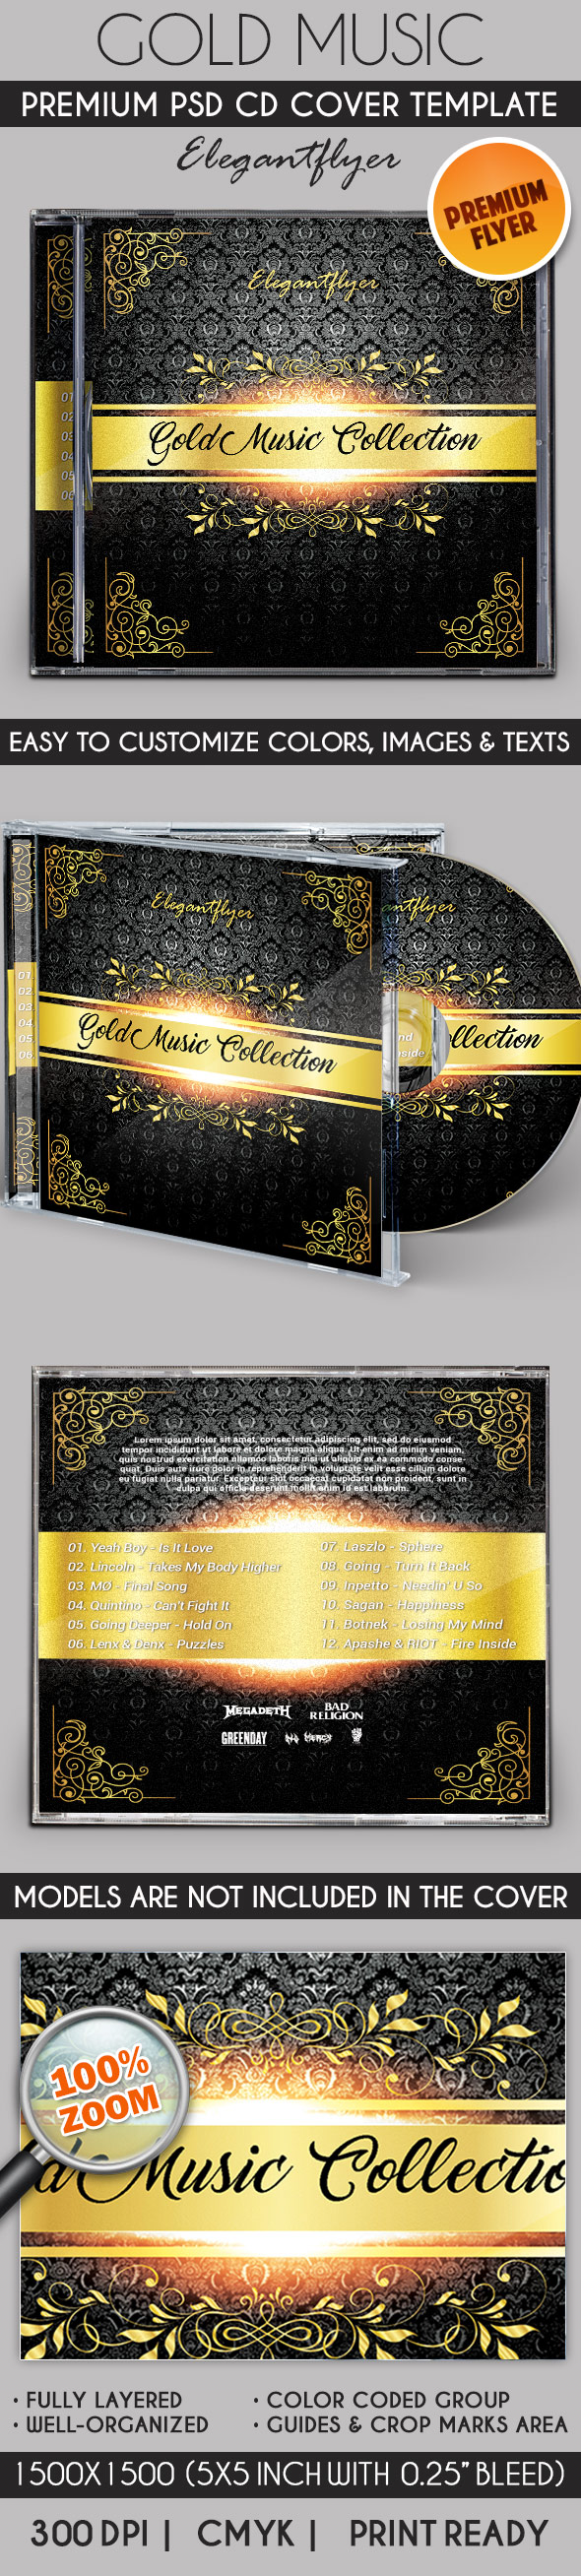 CD Cover for Gold Music Collection